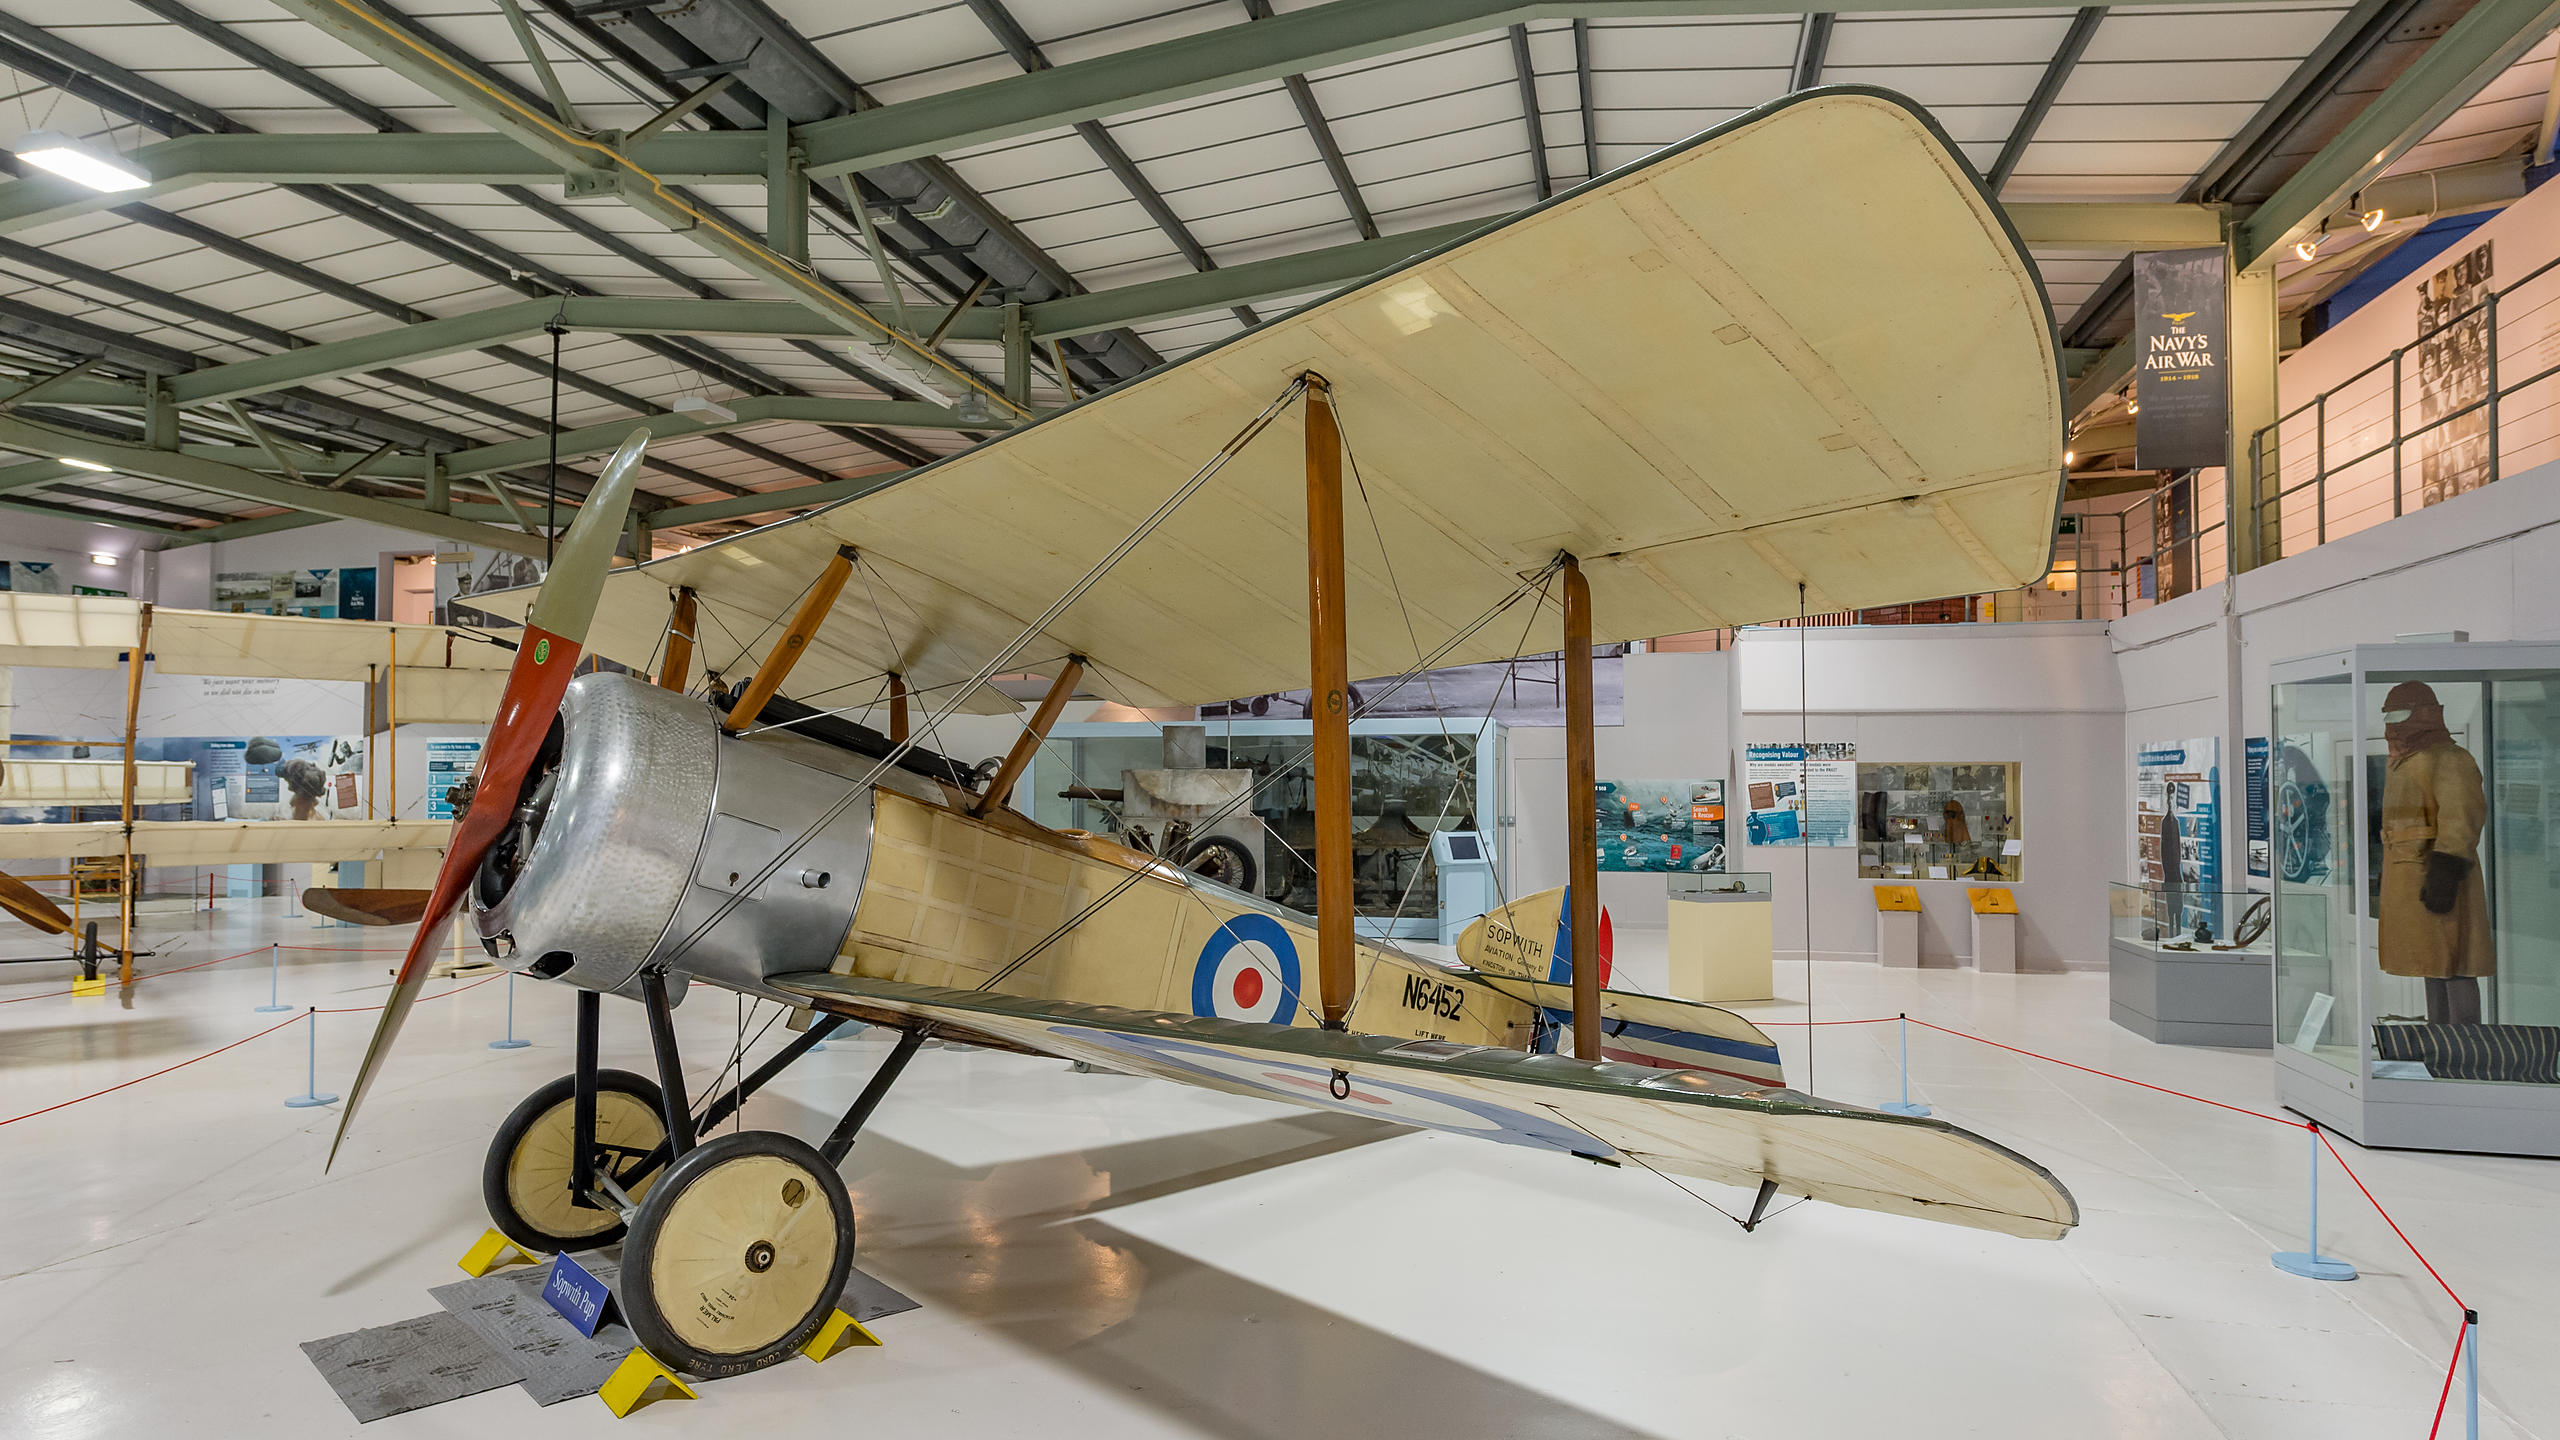 Tiger Moth Aeroplane at the Fleet Air Arm Museum,